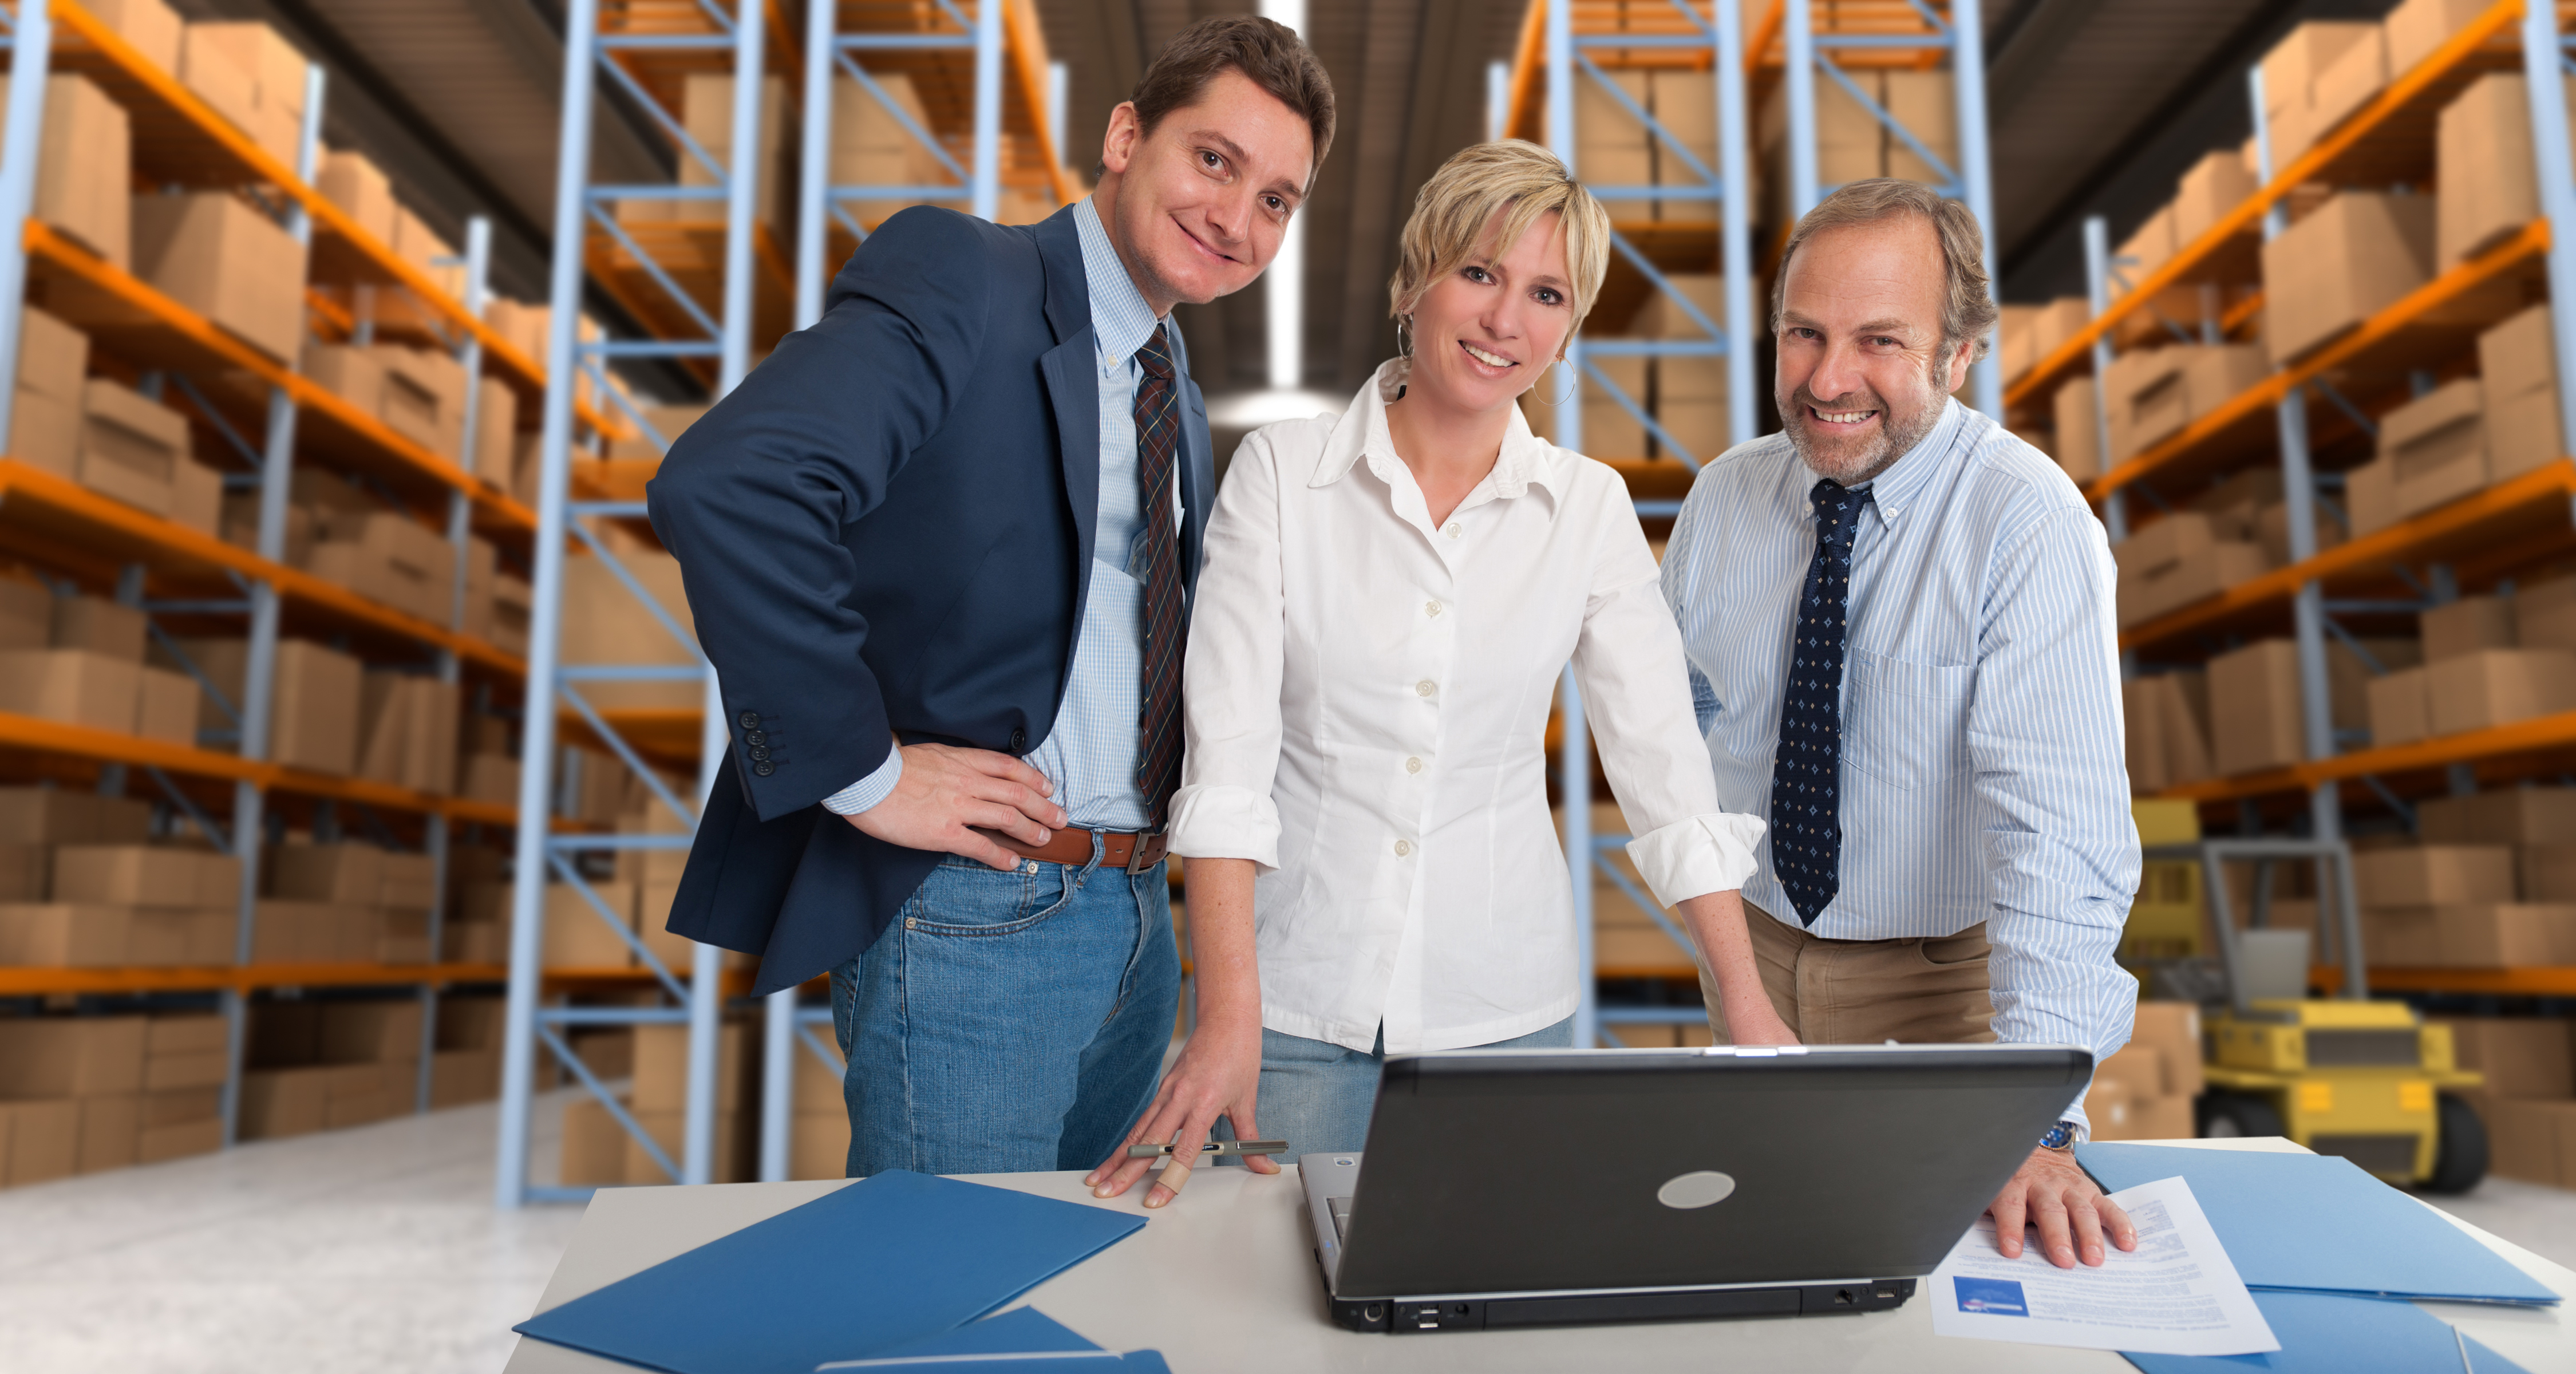 Business team with a storage warehouse at the background | Capitol Hill Offices